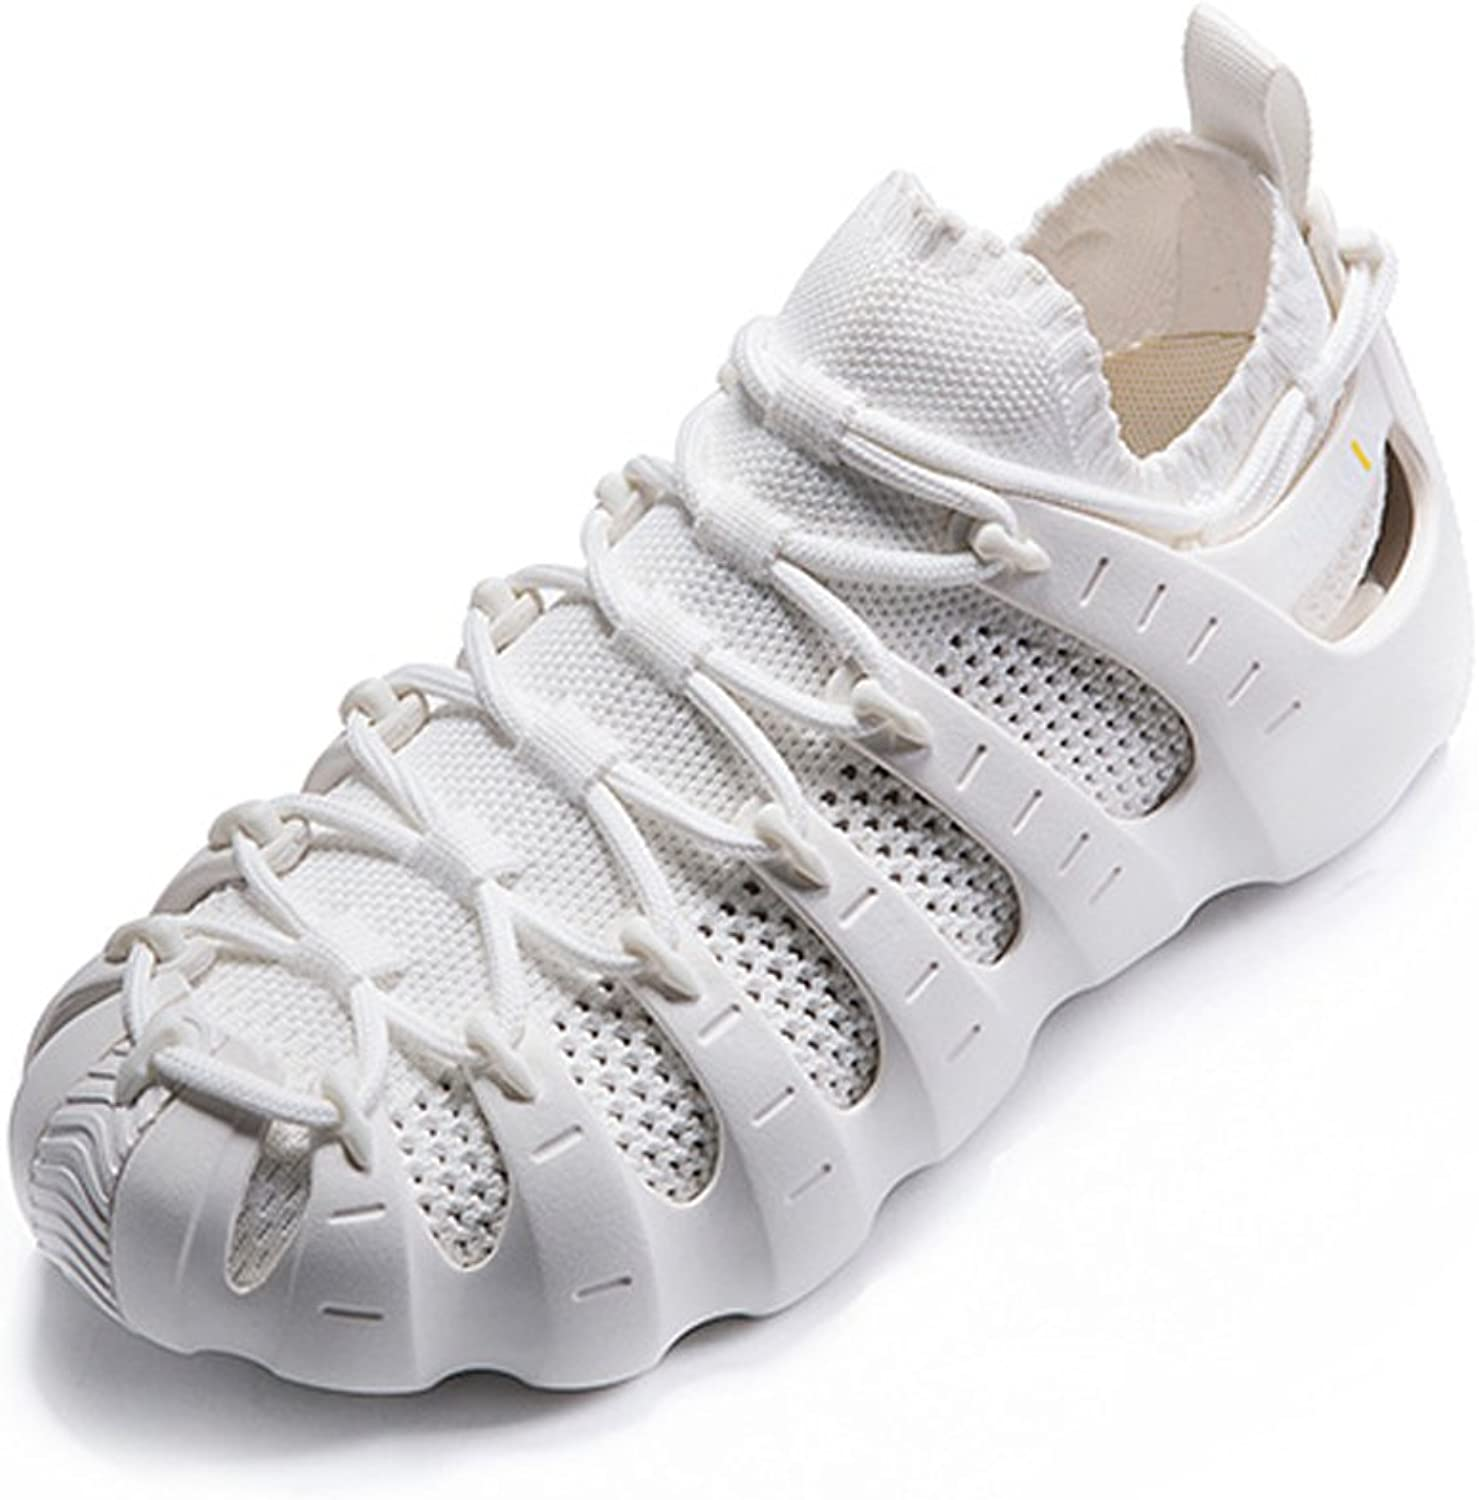 Women Men Awesome 3-in-1 Lightweight Athletic Rome Sneaker shoes